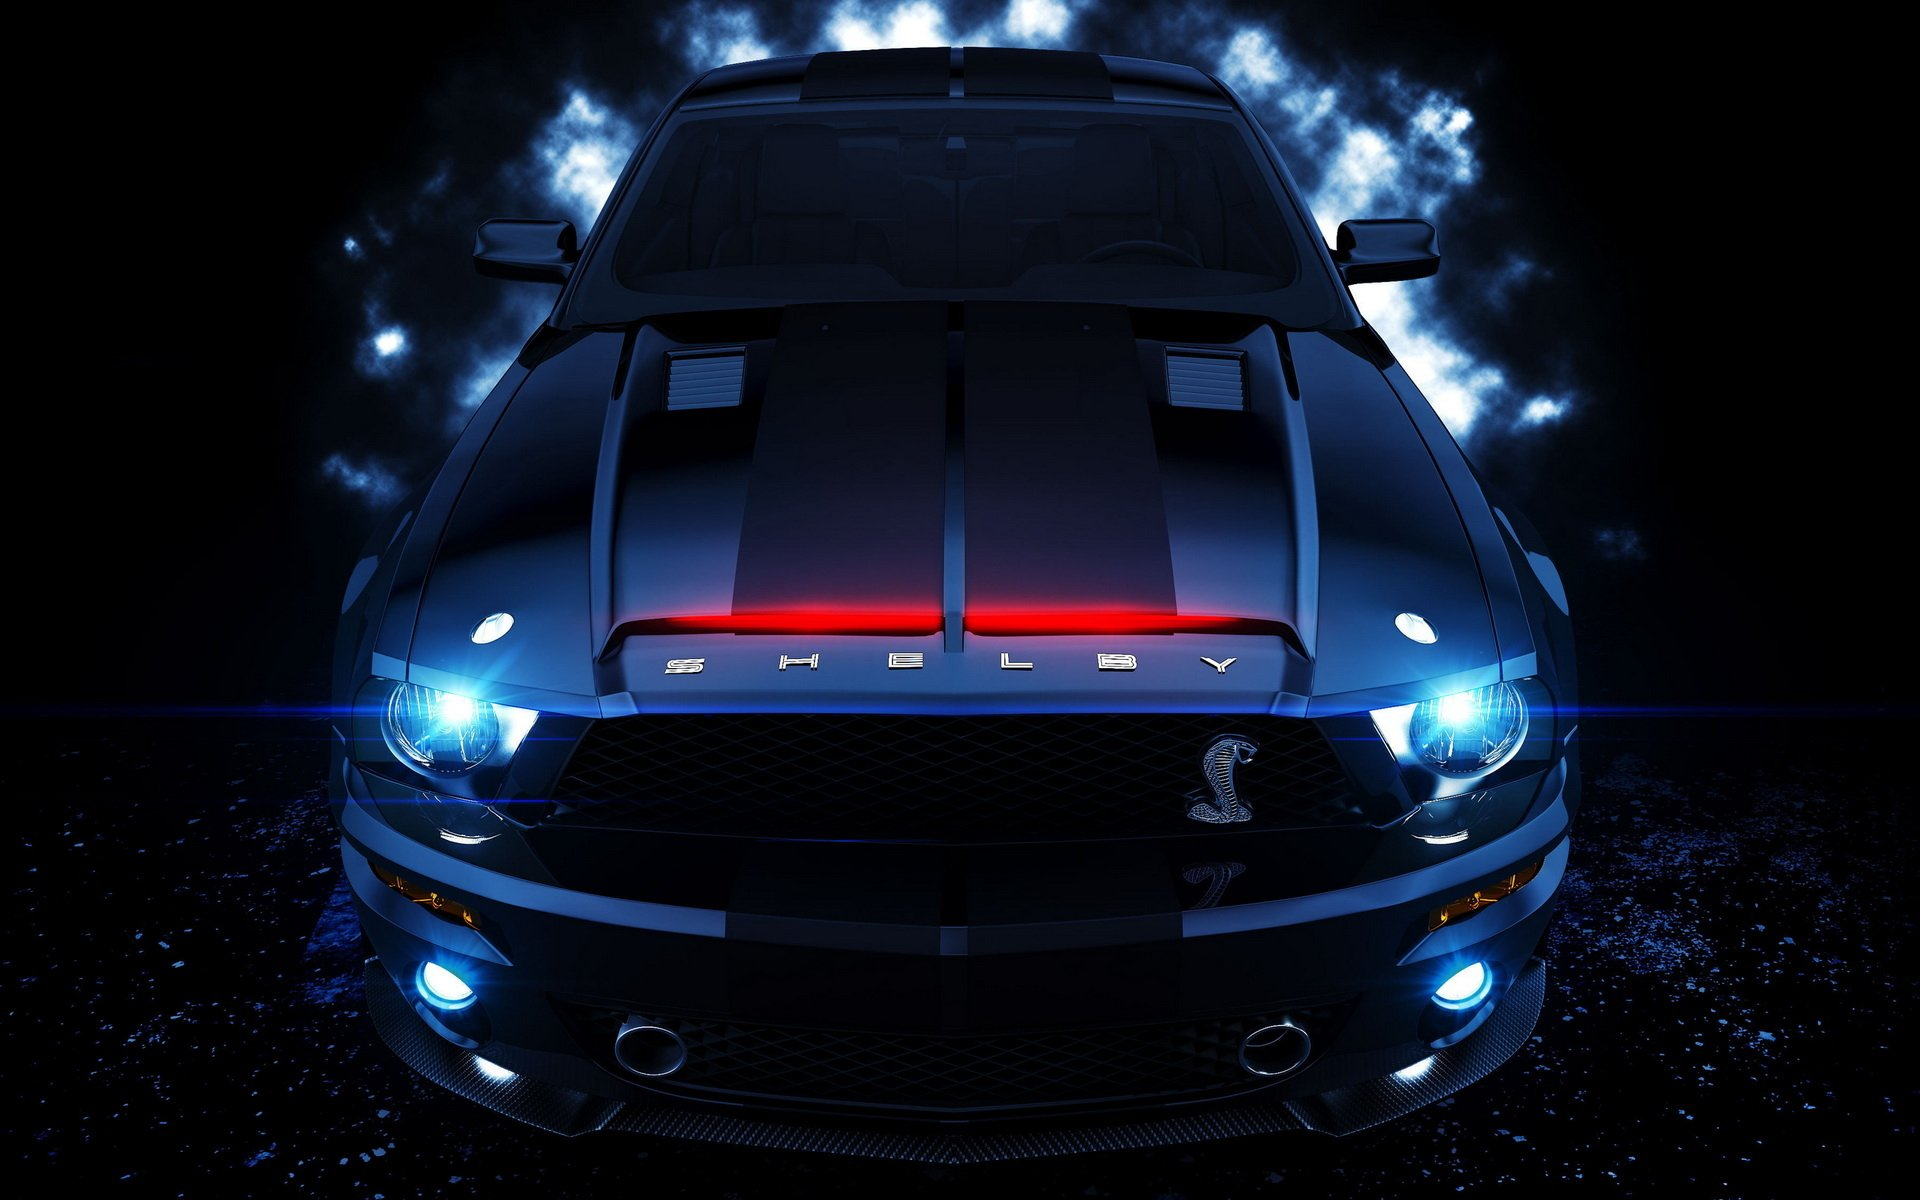 Ford Mustang Shelby Cobra Gt 500 Full Hd Wallpaper And